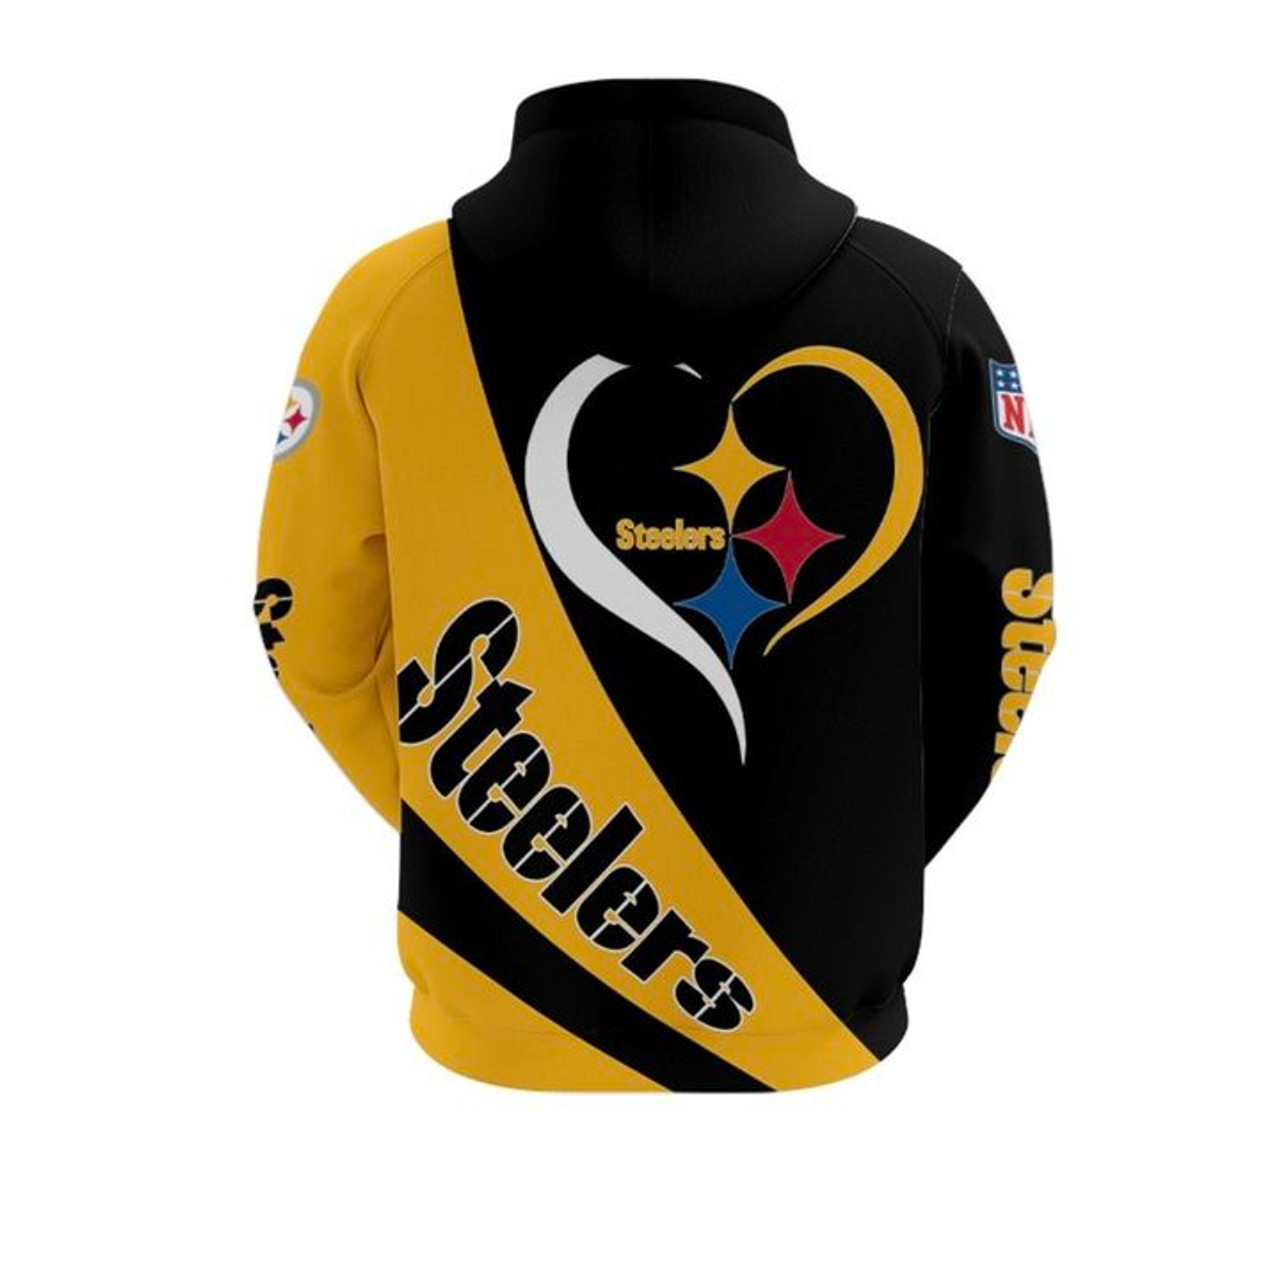 **(NEW-OFFICIAL-N.F.L. PITTSBURGH-STEELERS-TEAM-PULLOVER-HOODIES/CUSTOM-3D-DETAILED-GRAPHIC-PRINTED-DOUBLE-SIDED-STEELERS-HEART-DESIGNS & OFFICIAL-STEELERS-TEAM-COLORS/WARM-PREMIUM-STEELERS-GAME-DAY-TEAM-SPORT-PULLOVER-HOODIES)**